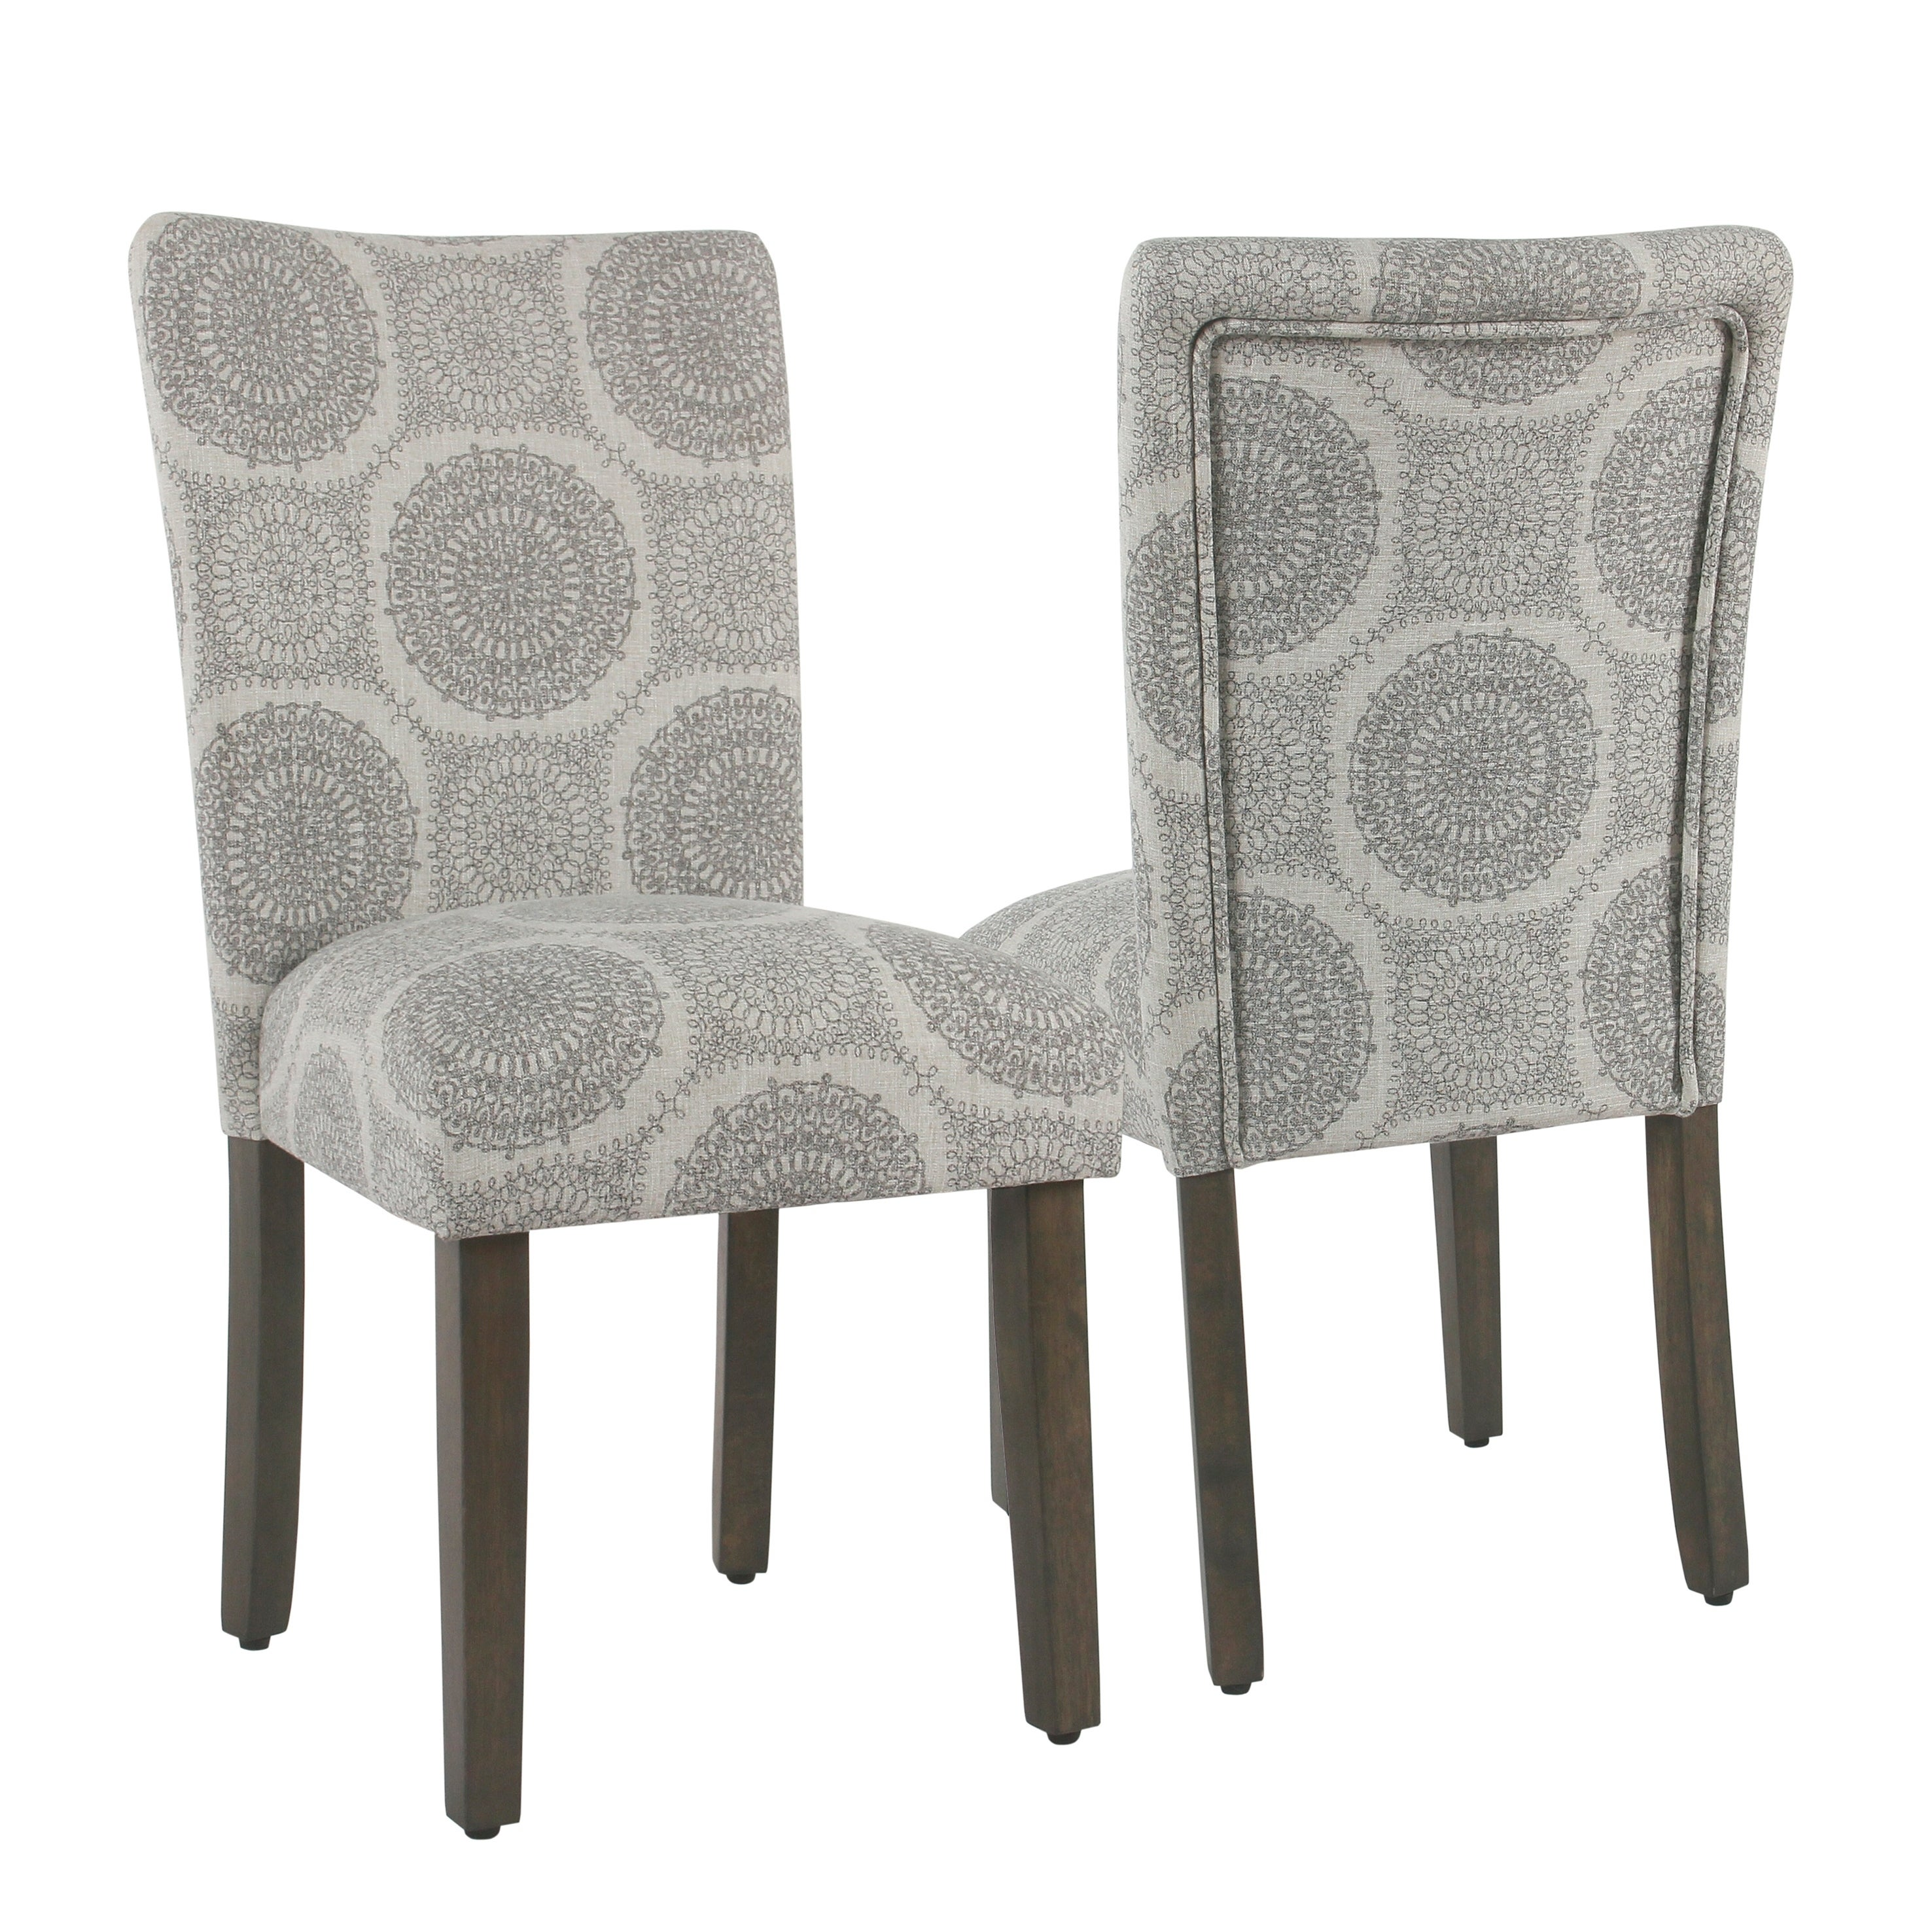 HomePop Parsons Dining Chair - Gray Medallion (set of 2) (Grey)